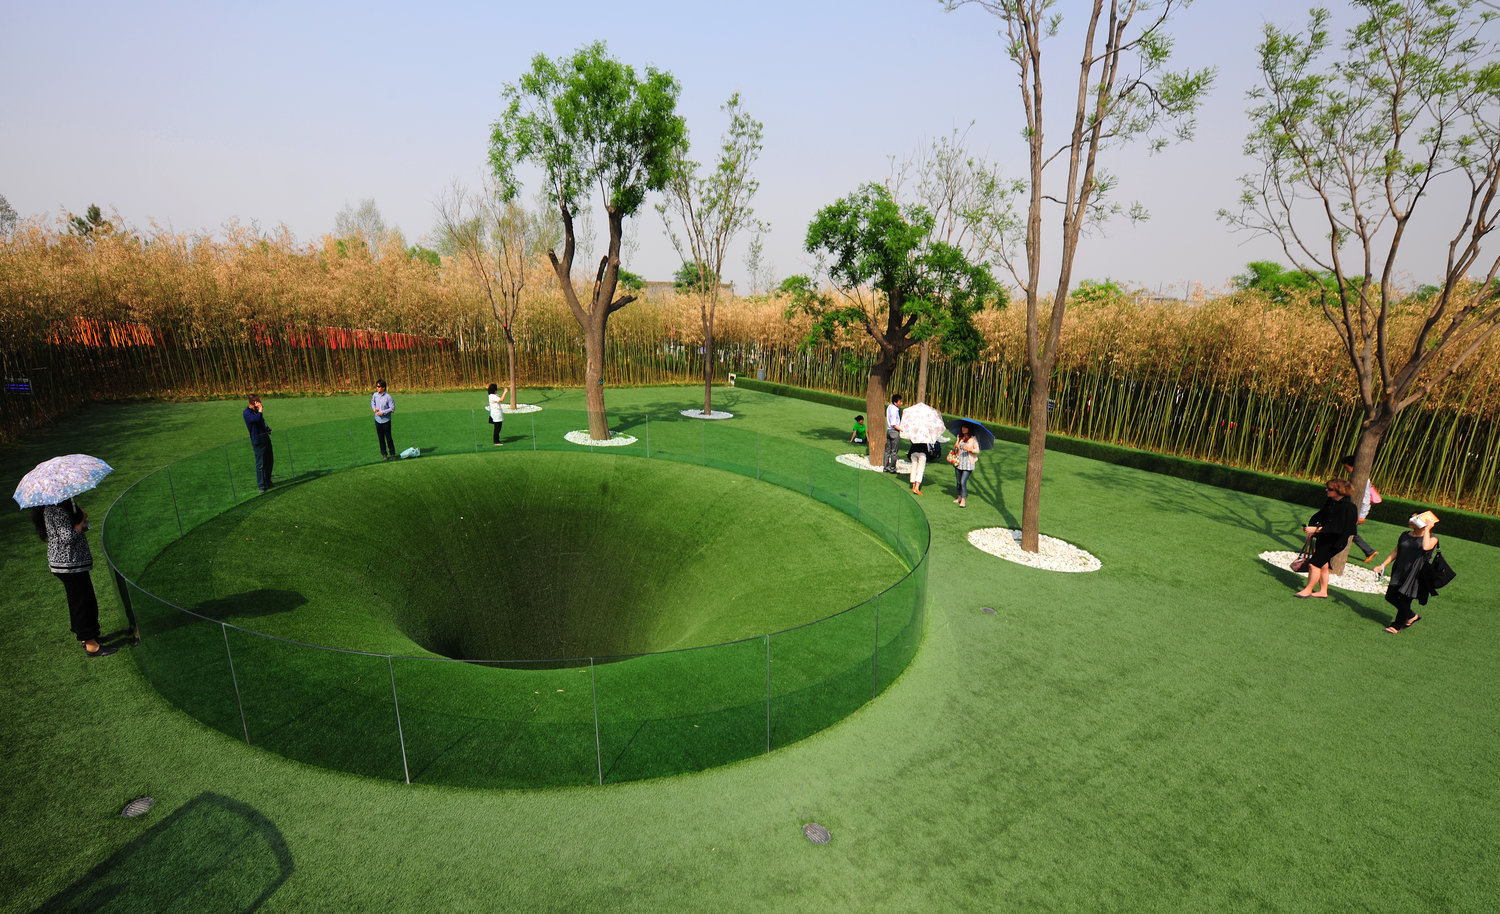 The Big Dig in Xi'an, China. This is a project by TOPOTEK1, the company founded by Martin Rein-Cano